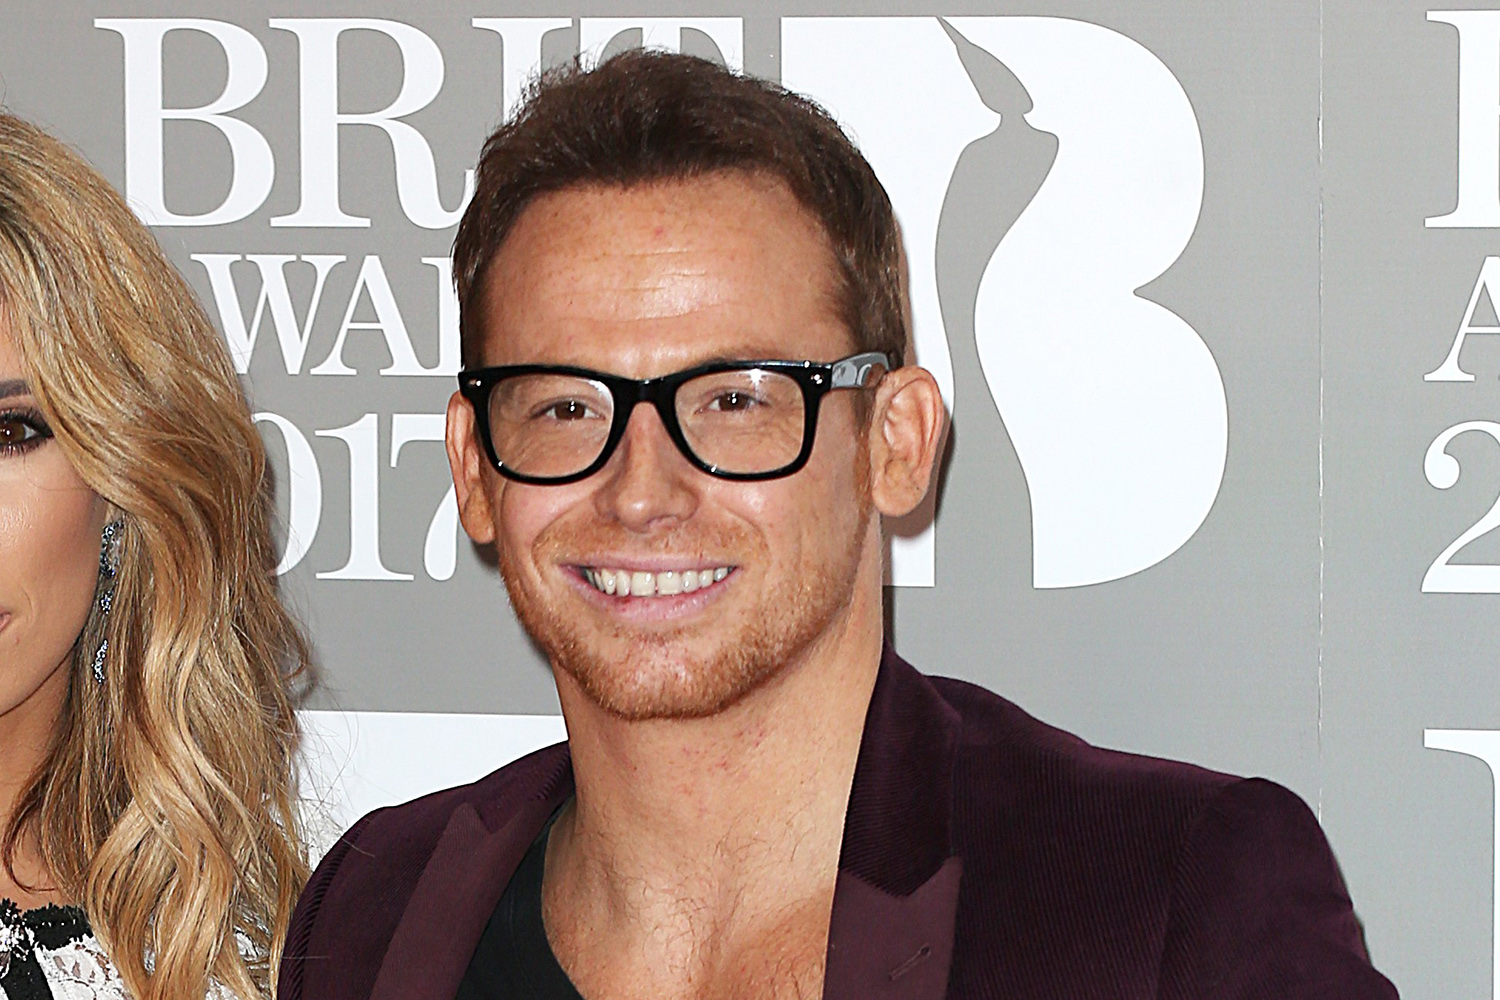 Joe Swash fans say his son Rex is his 'double' in cute new photo